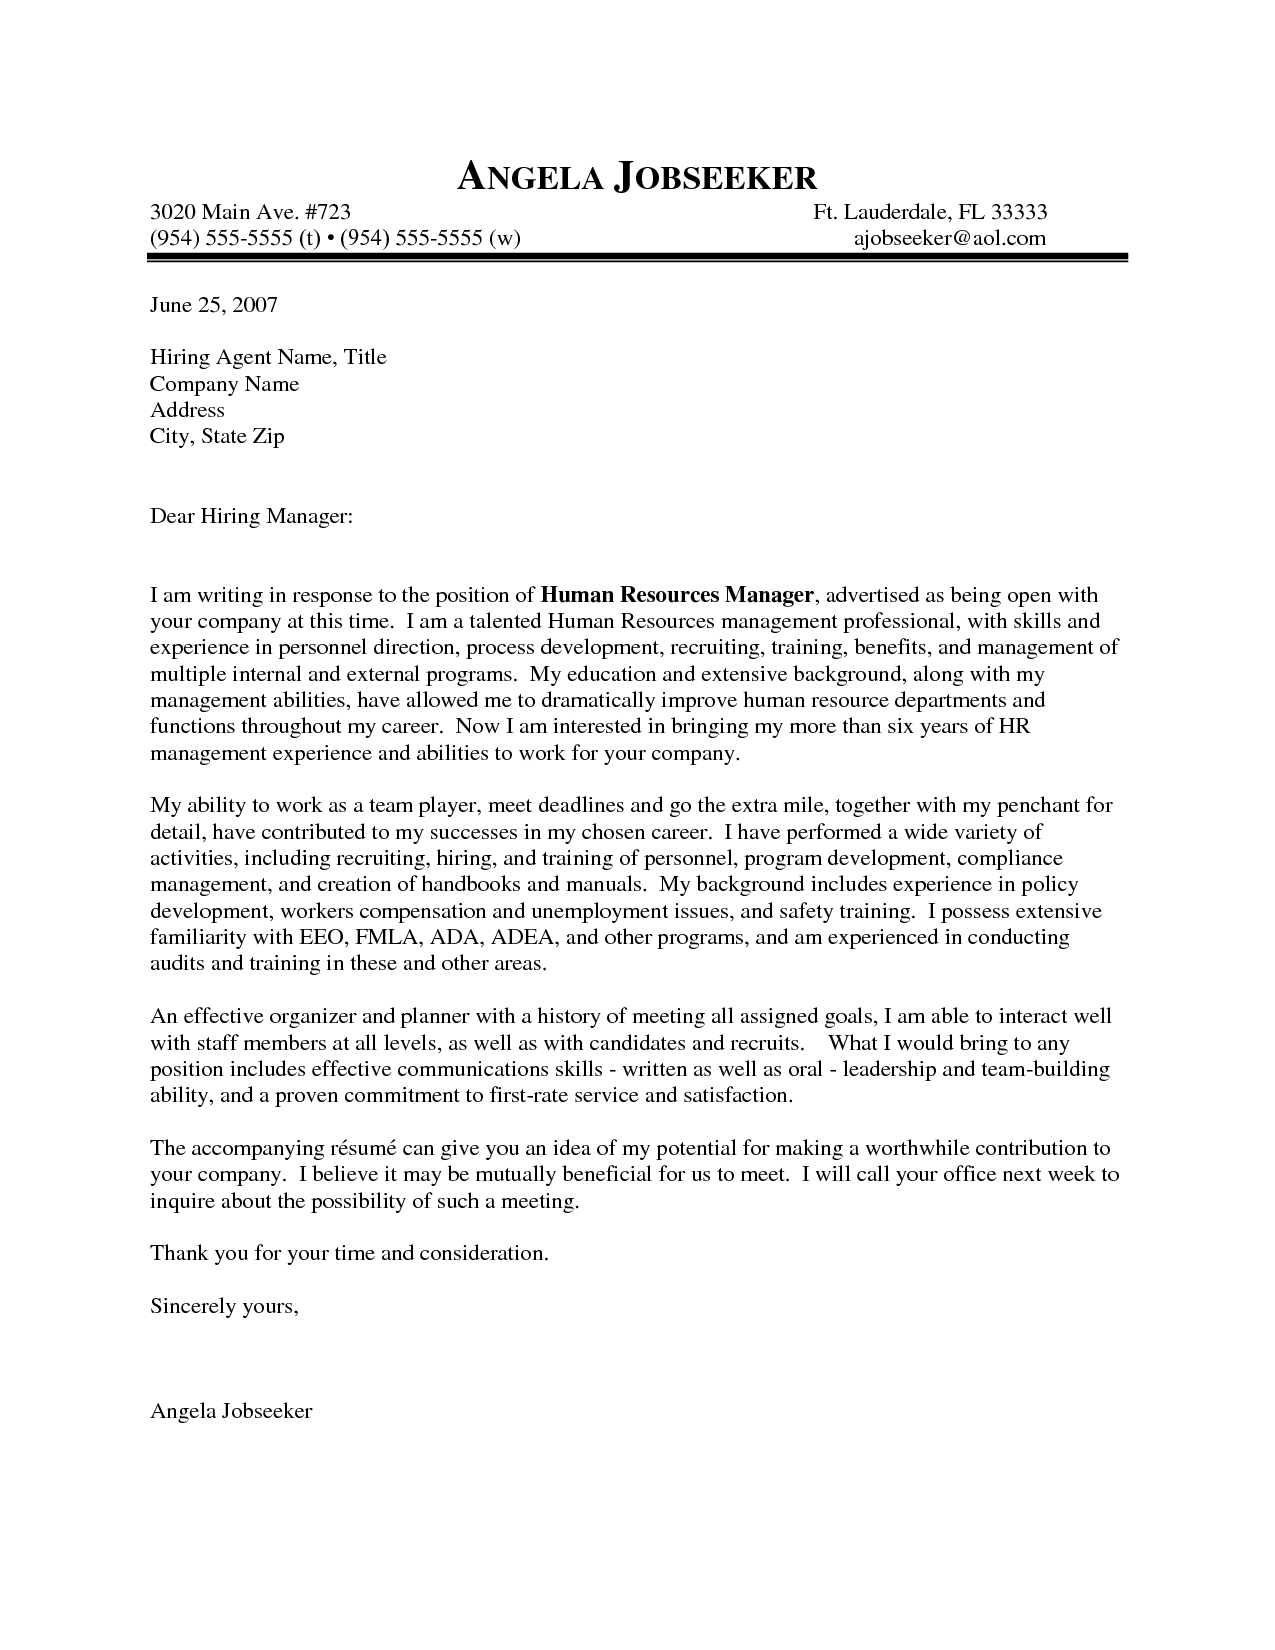 Outstanding Cover Letter Examples | HR Manager Cover Letter Example  Professional Cover Letter Samples